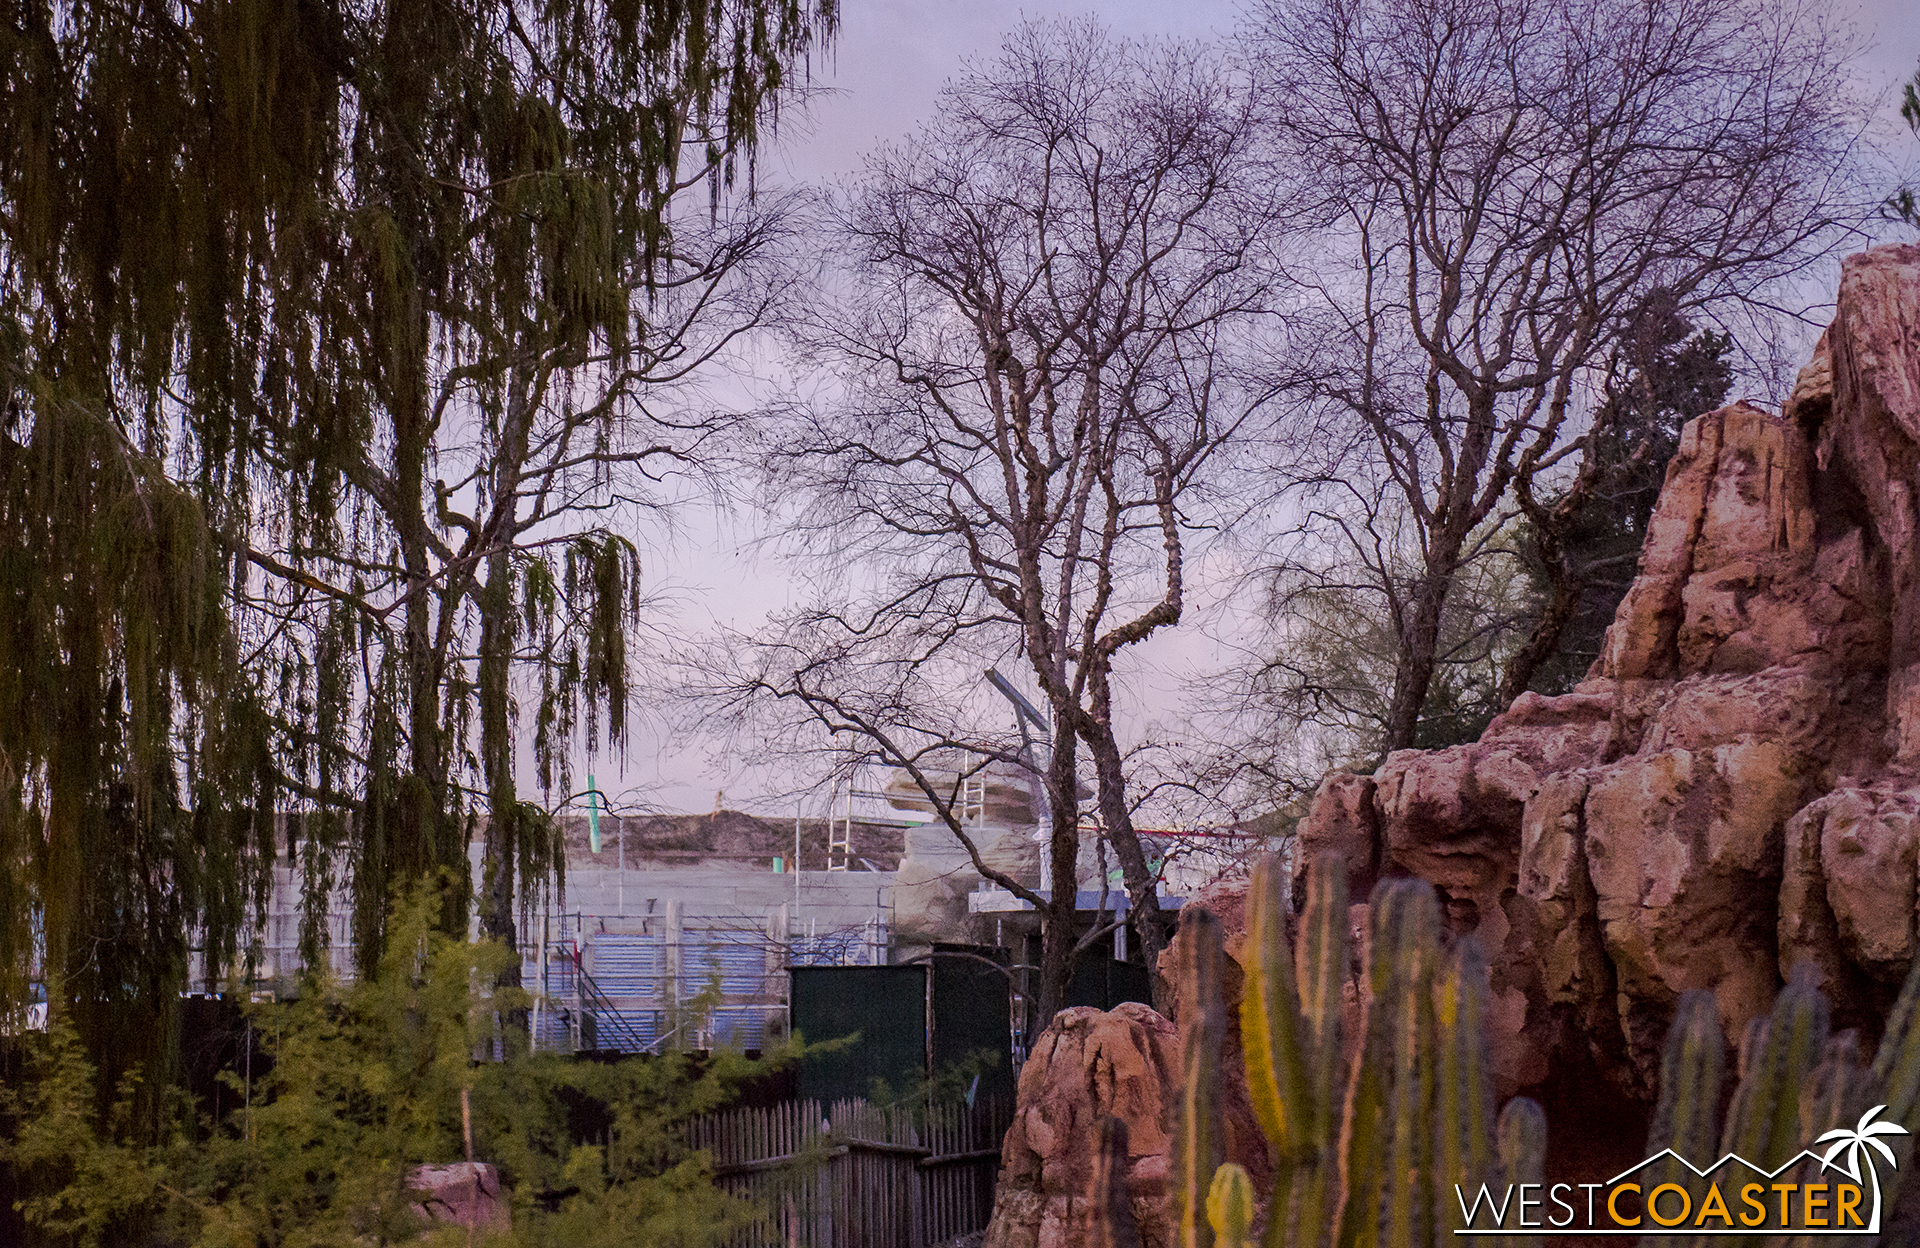 """The pathway between Frontierland and Fantasyland had been open during the Christmas and New Year's holiday period to alleviate the incredibly congested crowds and remove the double dead end in each area. And there were photos of videos eagerly showing off """"glimpses of 'Star Wars' Land"""" posted by people walking through with cameras above the (admittedly surprisingly low) temporary work walls. But those were really just photos of the rockwork that will face Frontierland and shield the actual """"Star Wars"""" Land from guests passing through the western-themed area of the park. So sorry guys... that wasn't """"Star Wars"""" Land at all."""